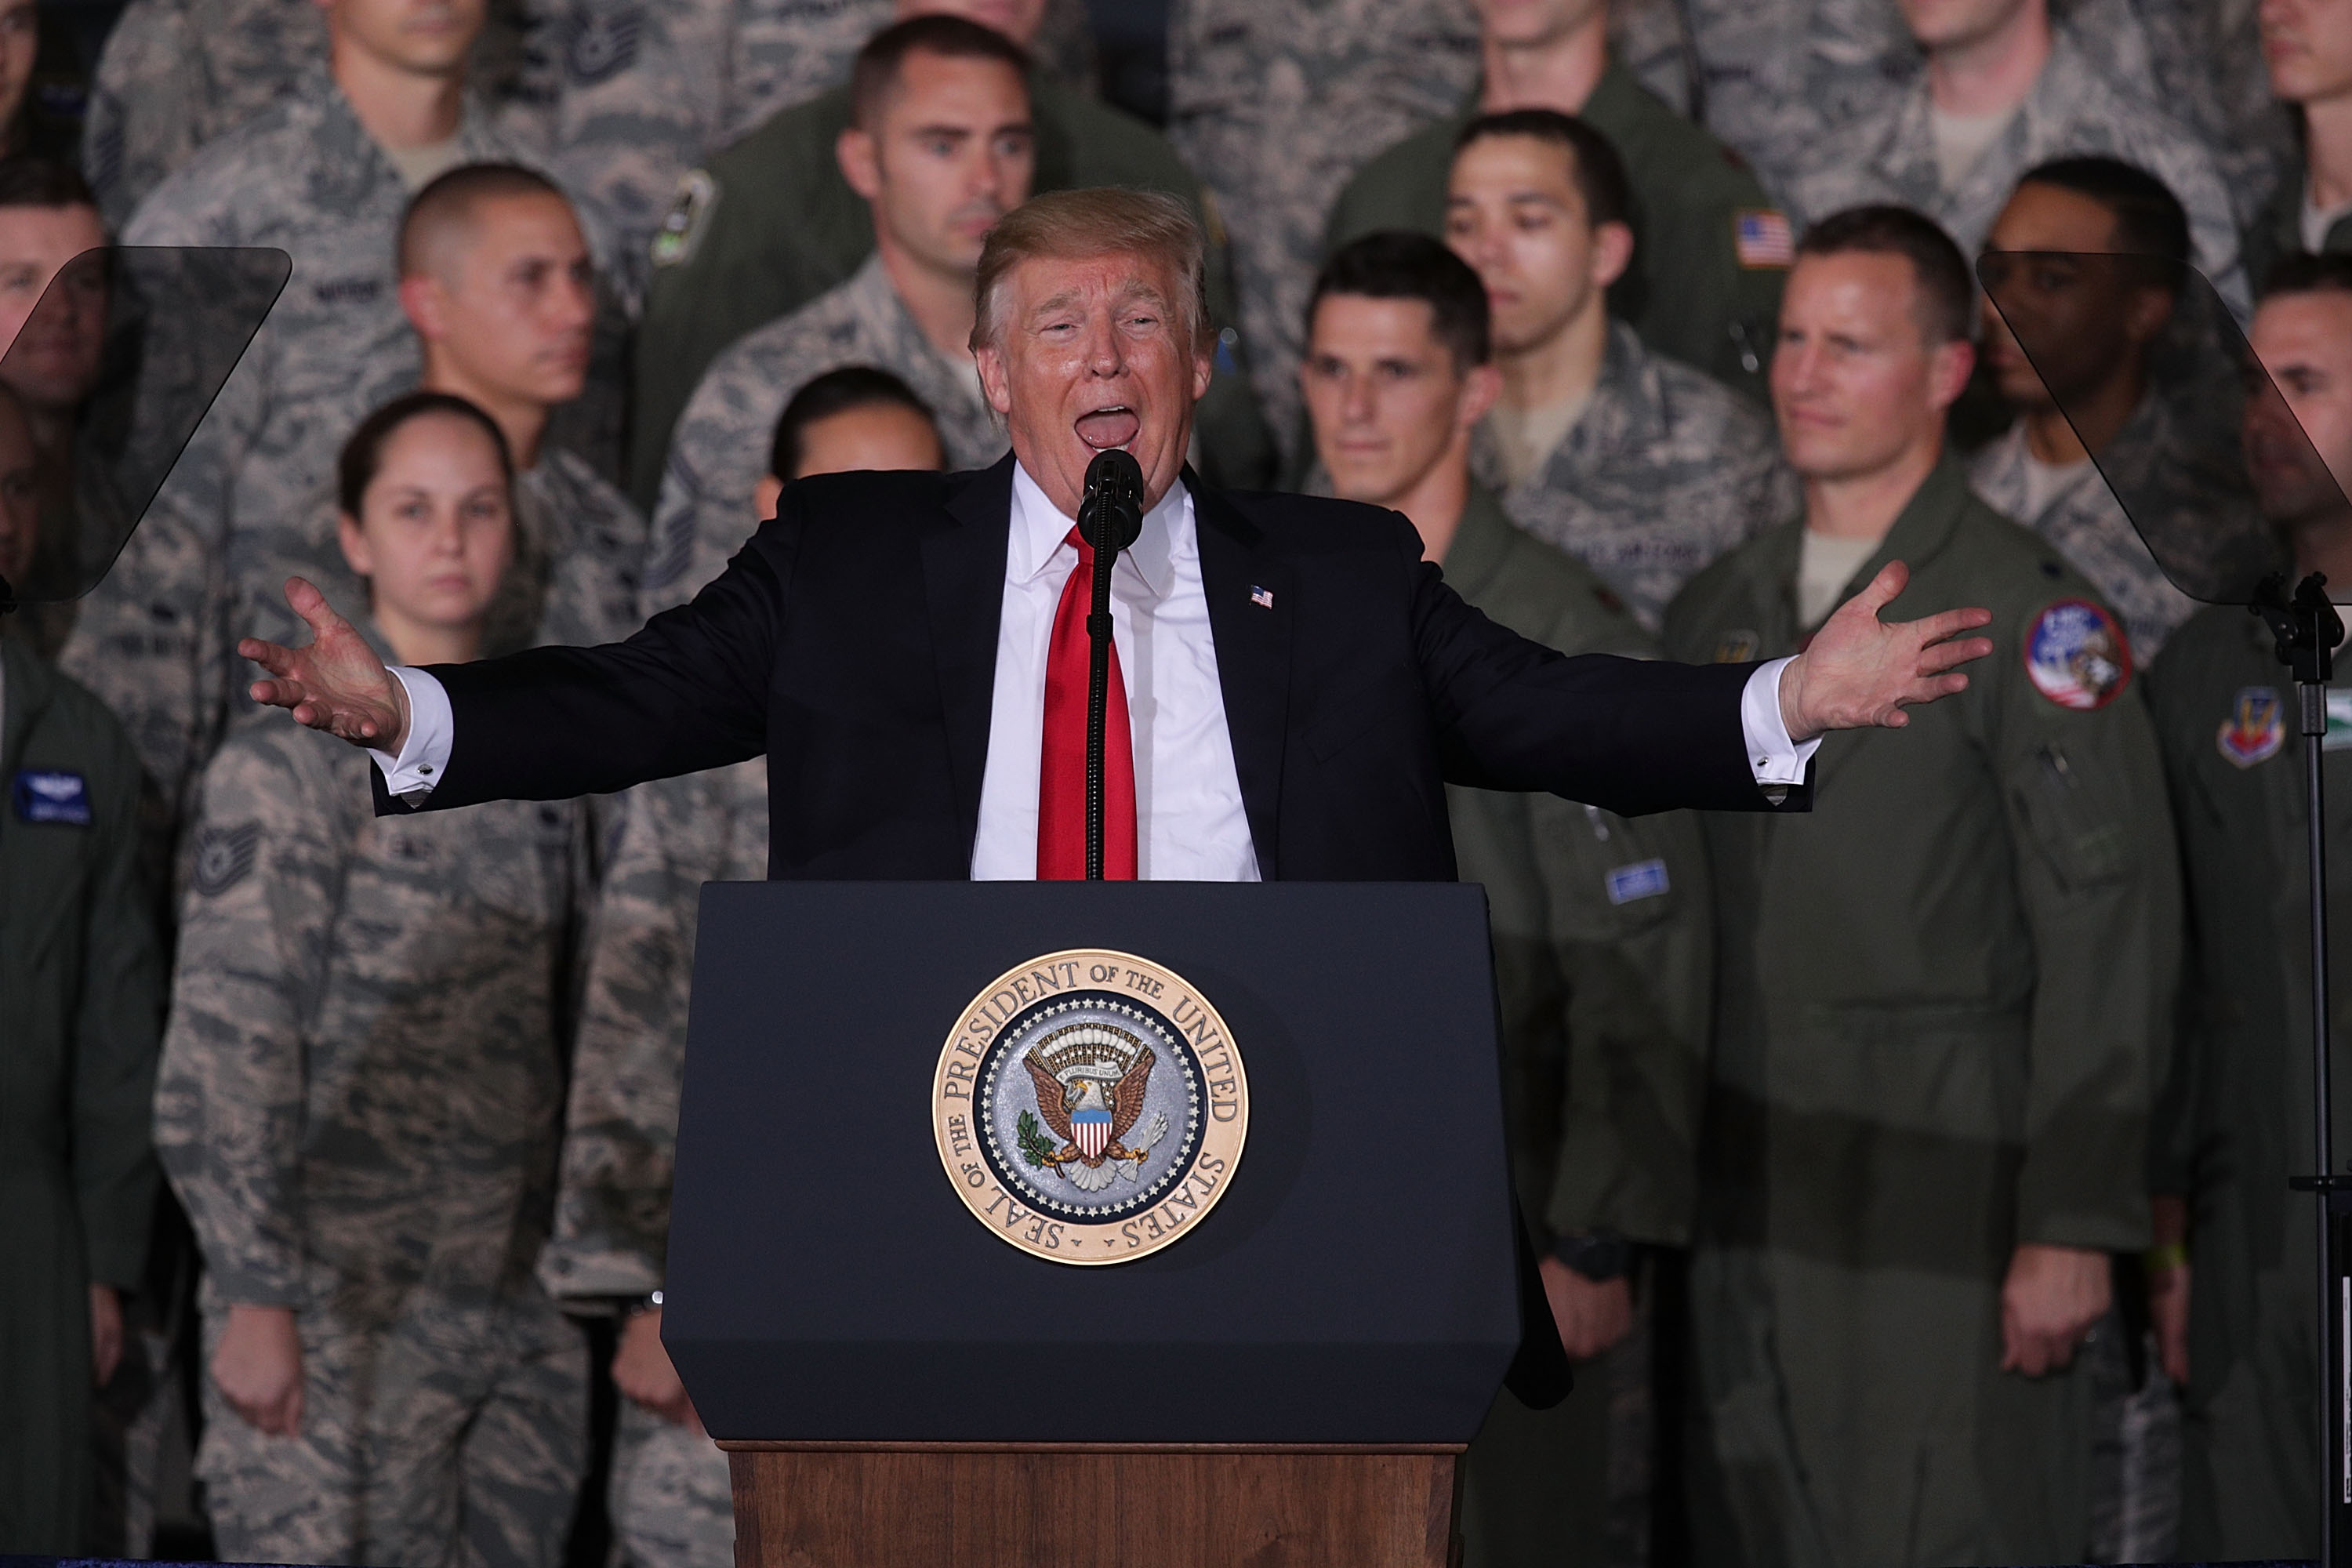 US Supreme Court ruling: U.S. President Donald Trump speaks to Air Force personnel during an event September 15, 2017 at Joint Base Andrews in Maryland.